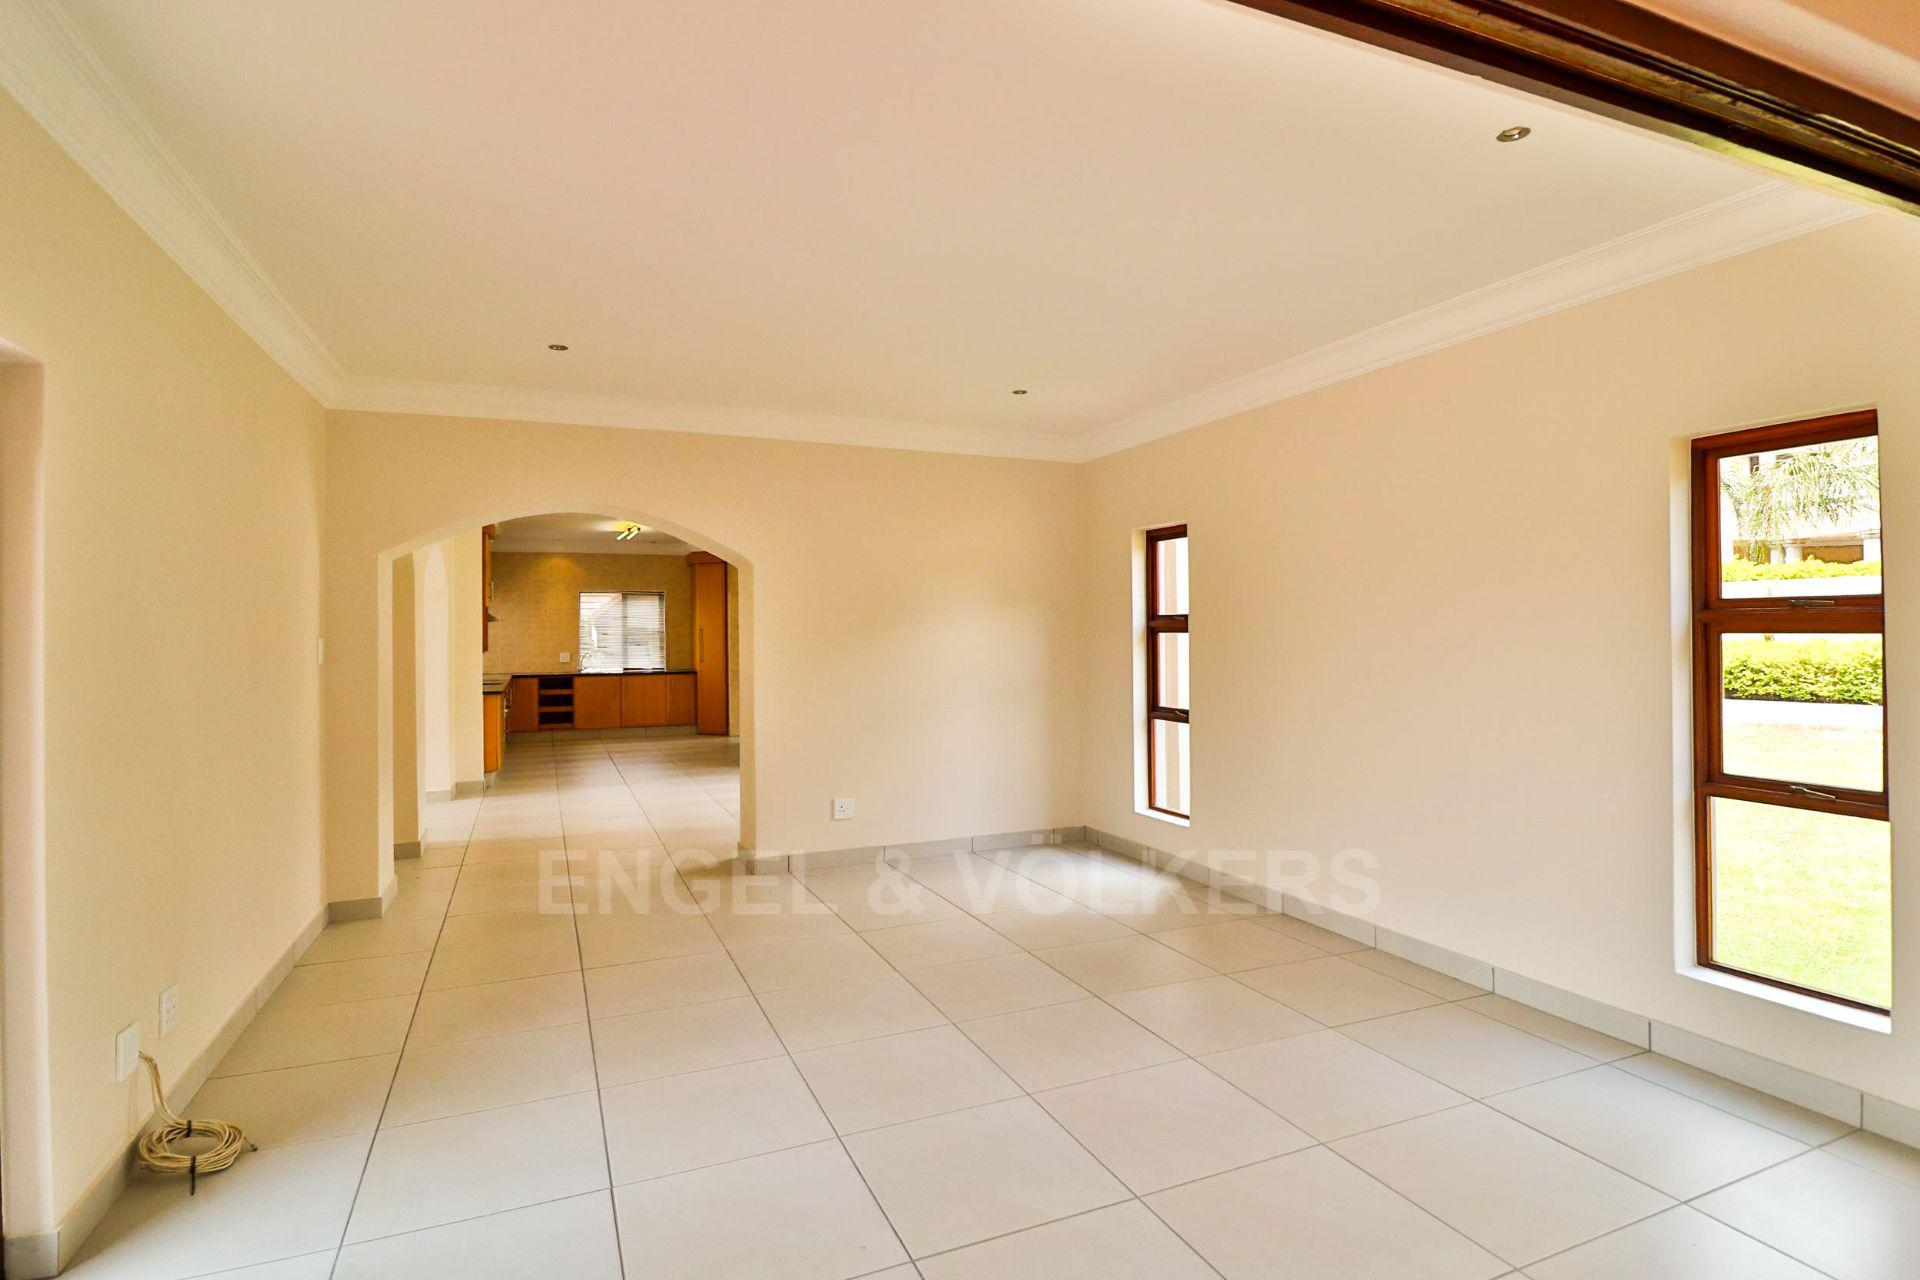 House in Xanadu Eco Park - Large rooms